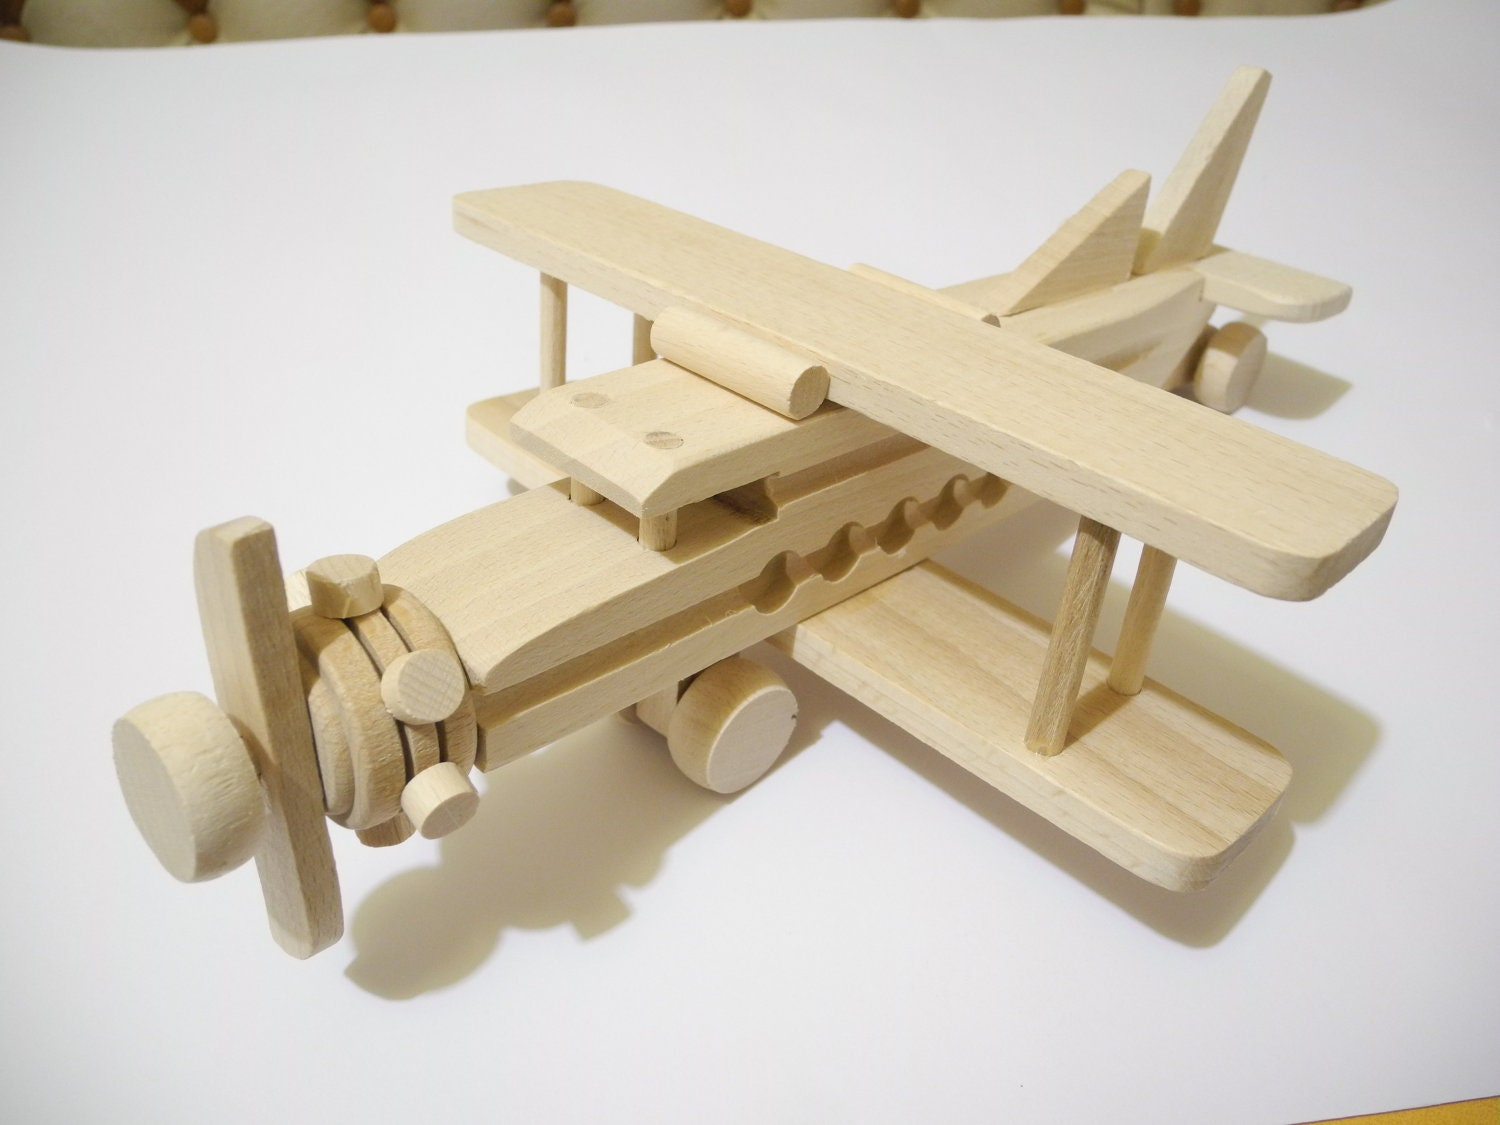 Toys Are Us Wooden Toys : Airplane organichandcrafted wooden toys eco friendly